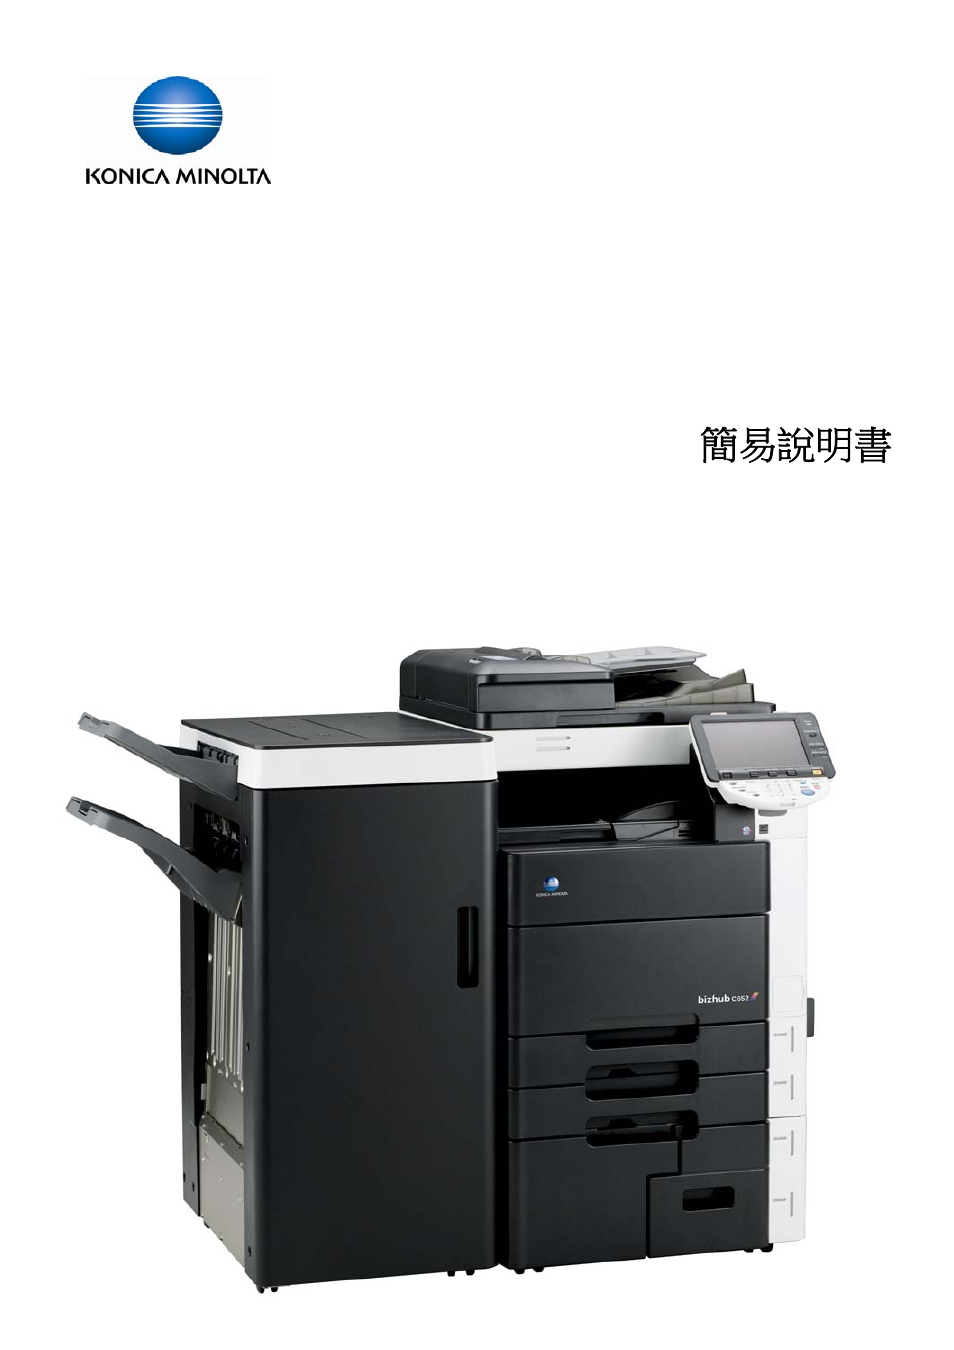 Konica Minolta BIZHUB C652 User Manual | 32 pages